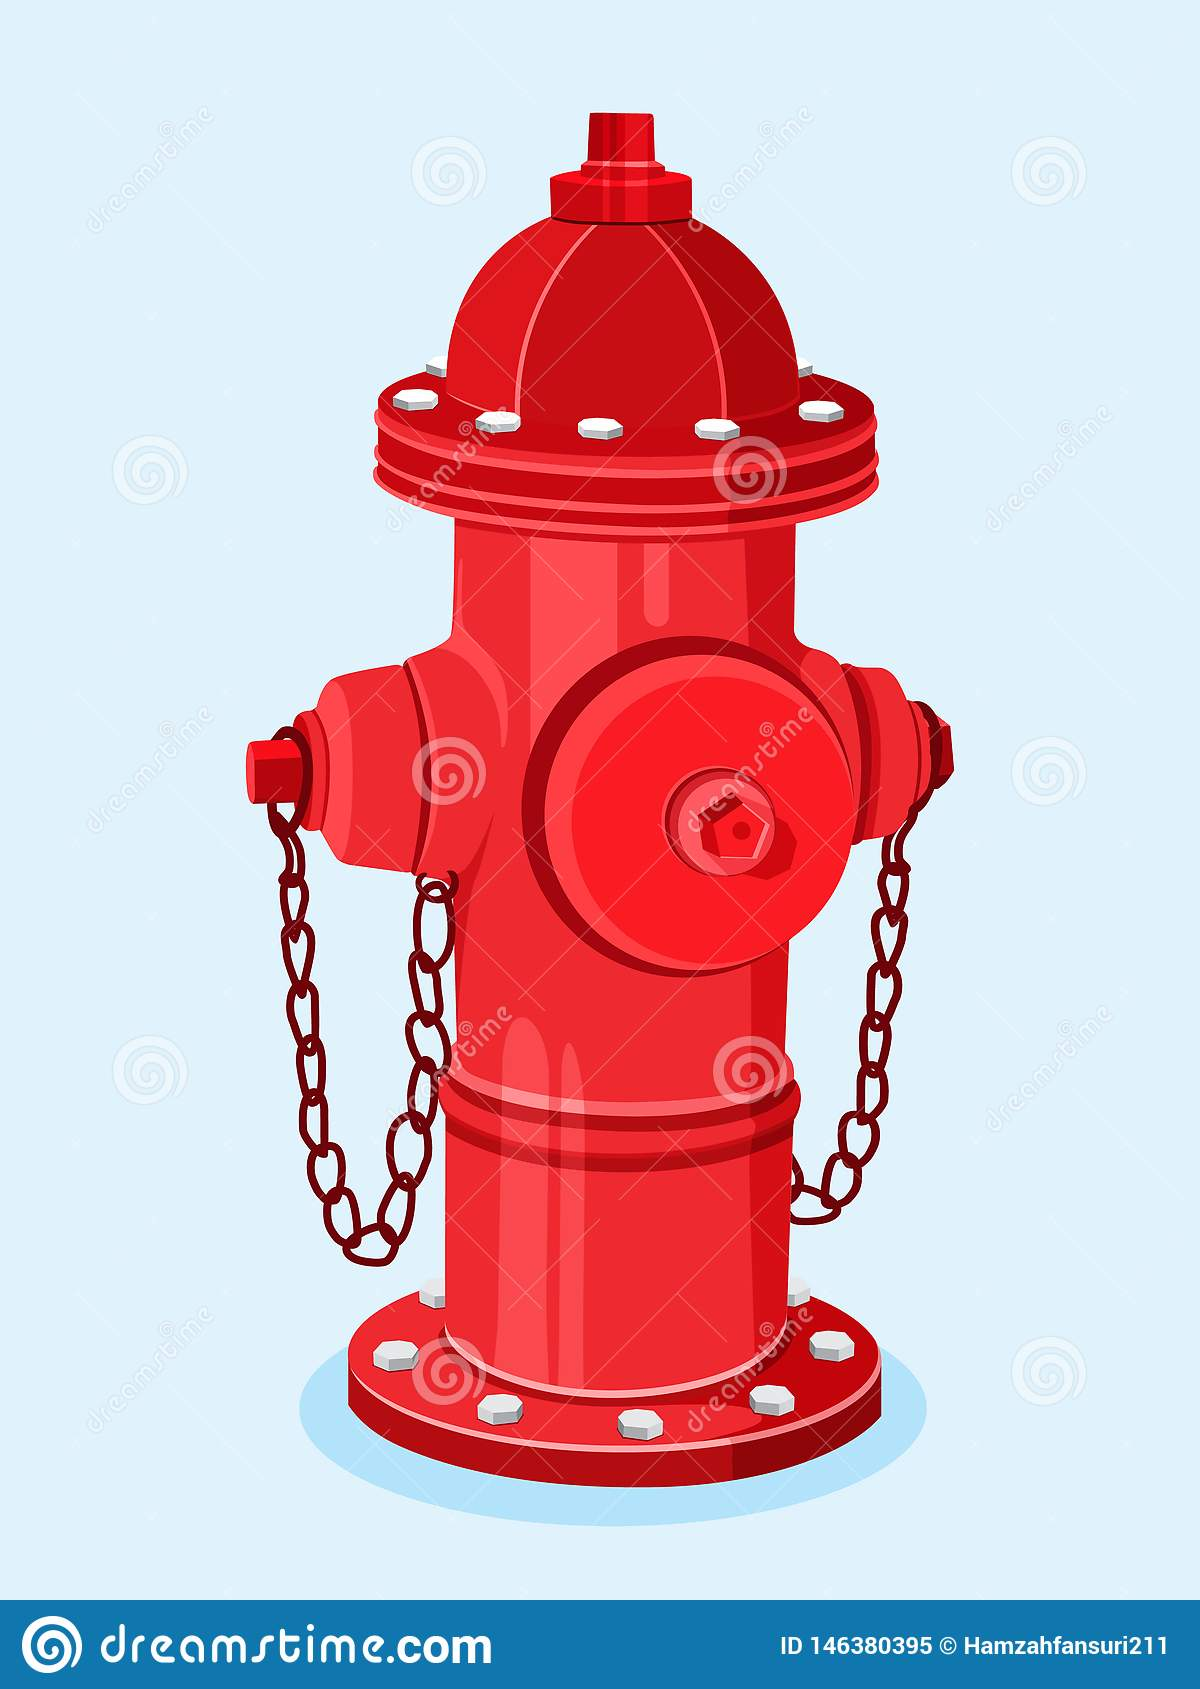 Isometric Red Fire Hydrant Vector Illustration